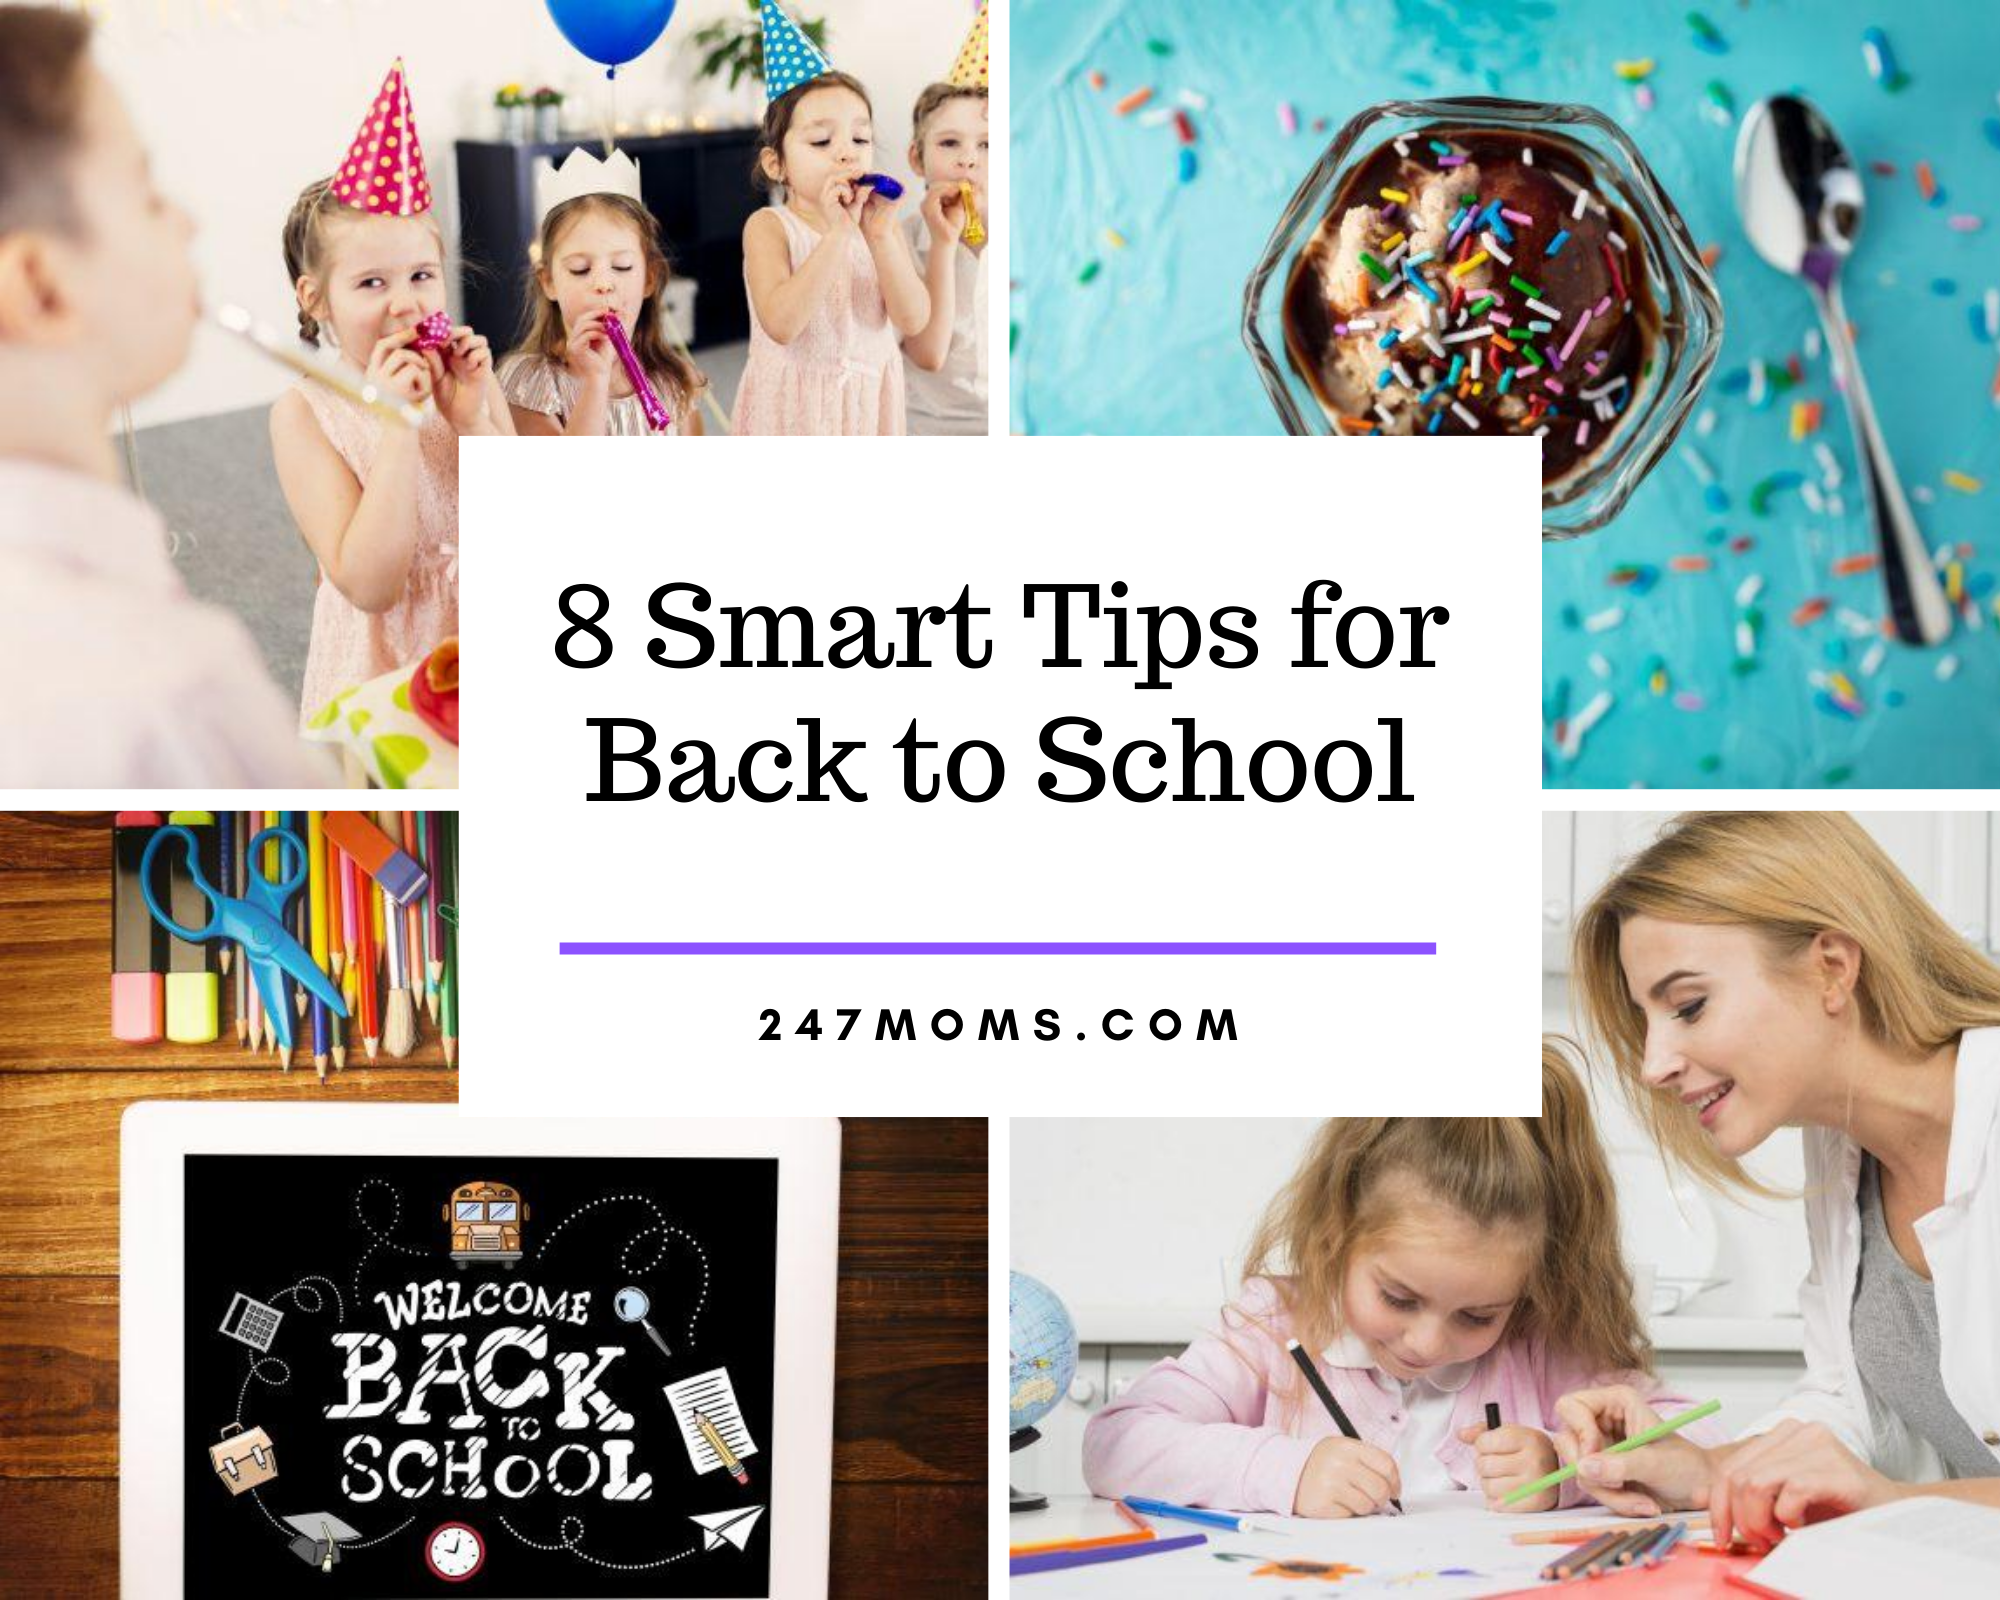 8 Smart Tips for Back to School